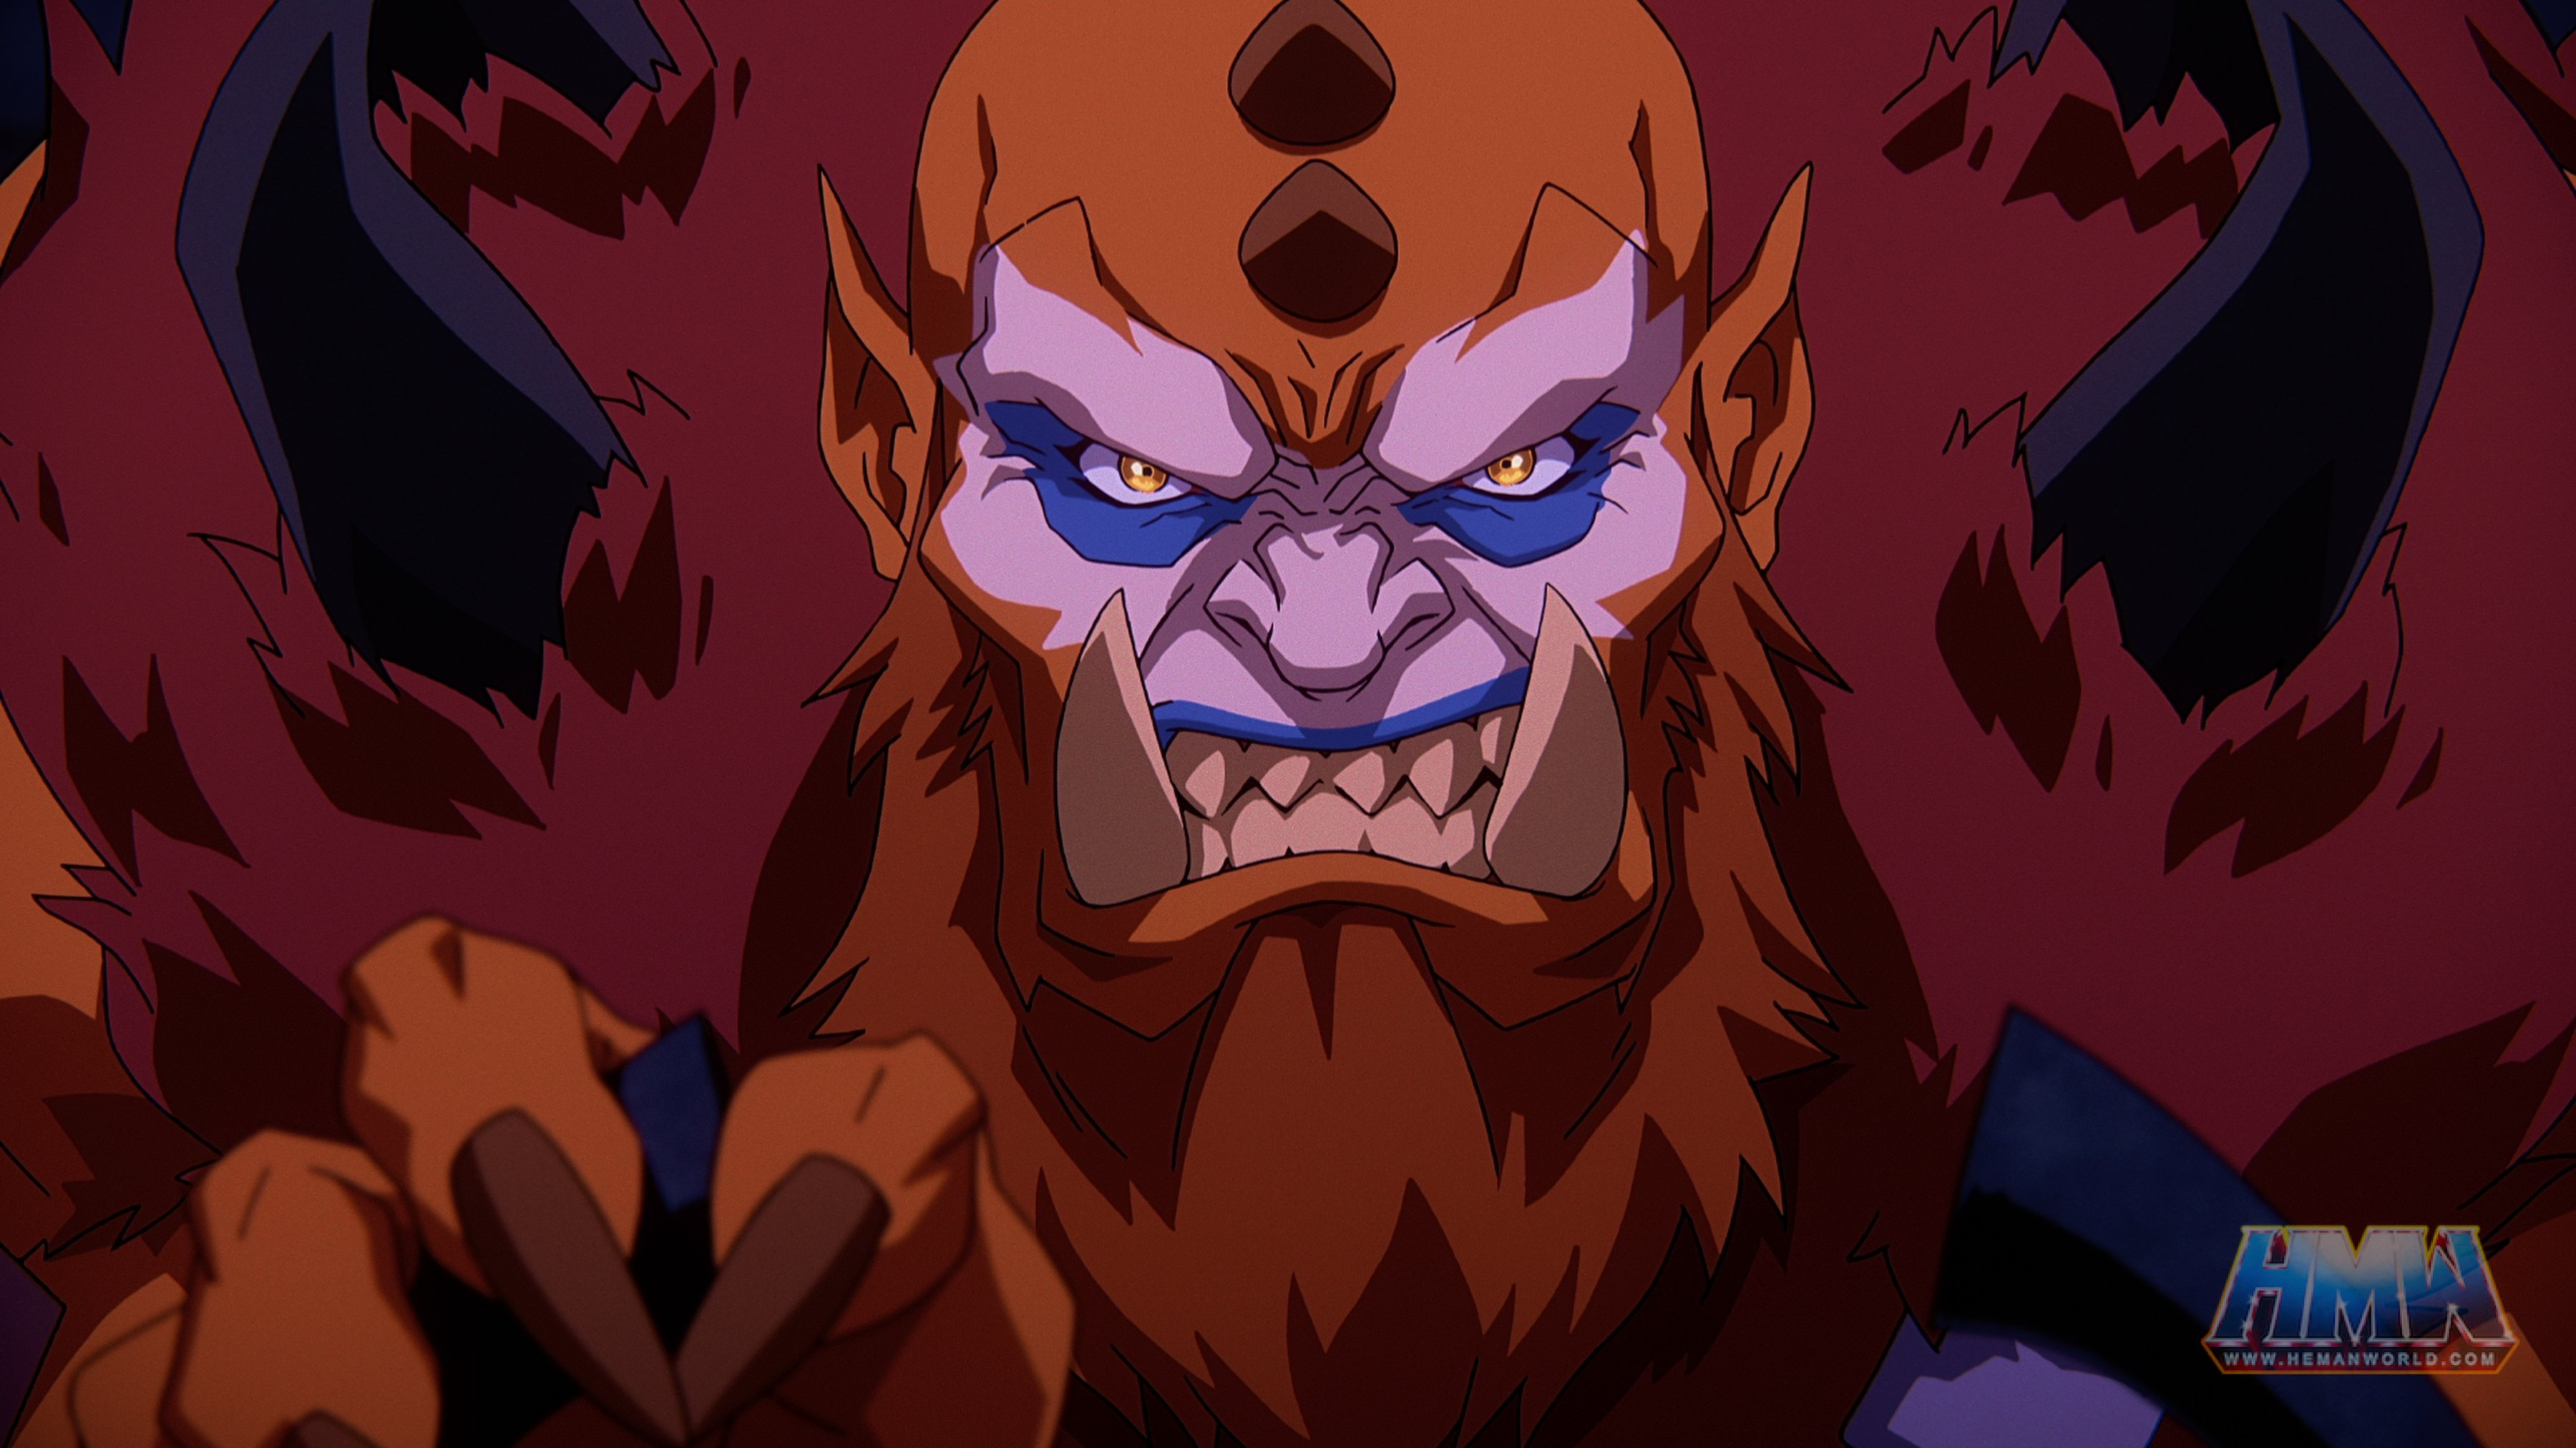 In a CG animated close-up still from Masters of the Universe: Revelation, Beast Man, a large male figure with pointed ears, maroon fur, a long red beard, pink and blue face paint and horns on his head and back. He looks straight ahead and bares his teeth in a growl.